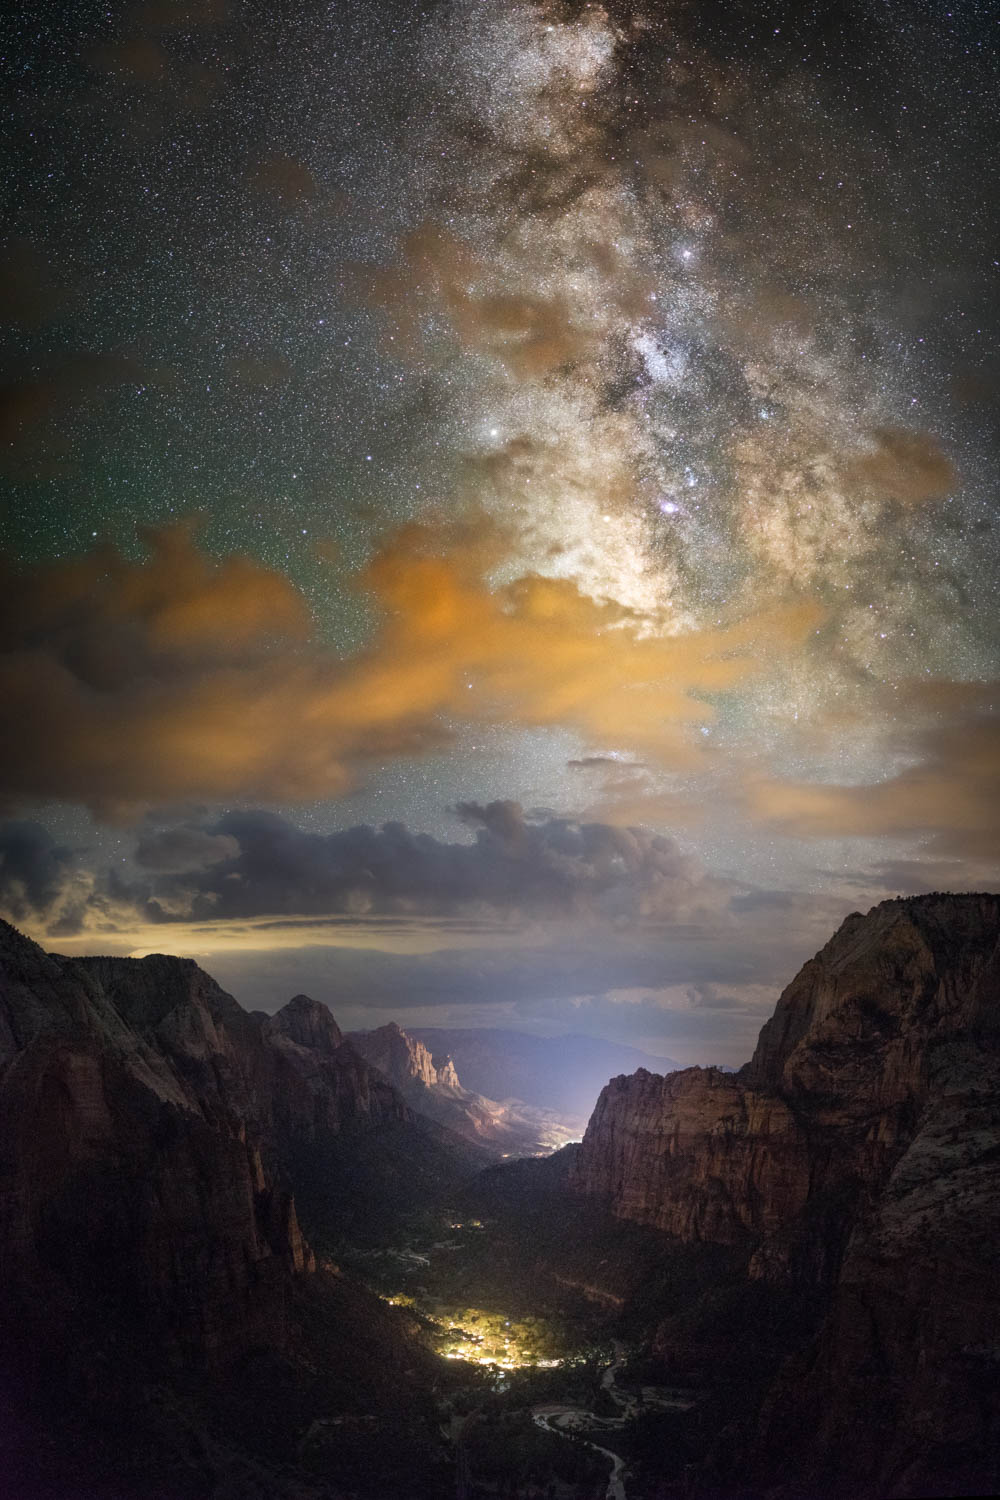 The Milky Way from Angels Landing, Zion National Park